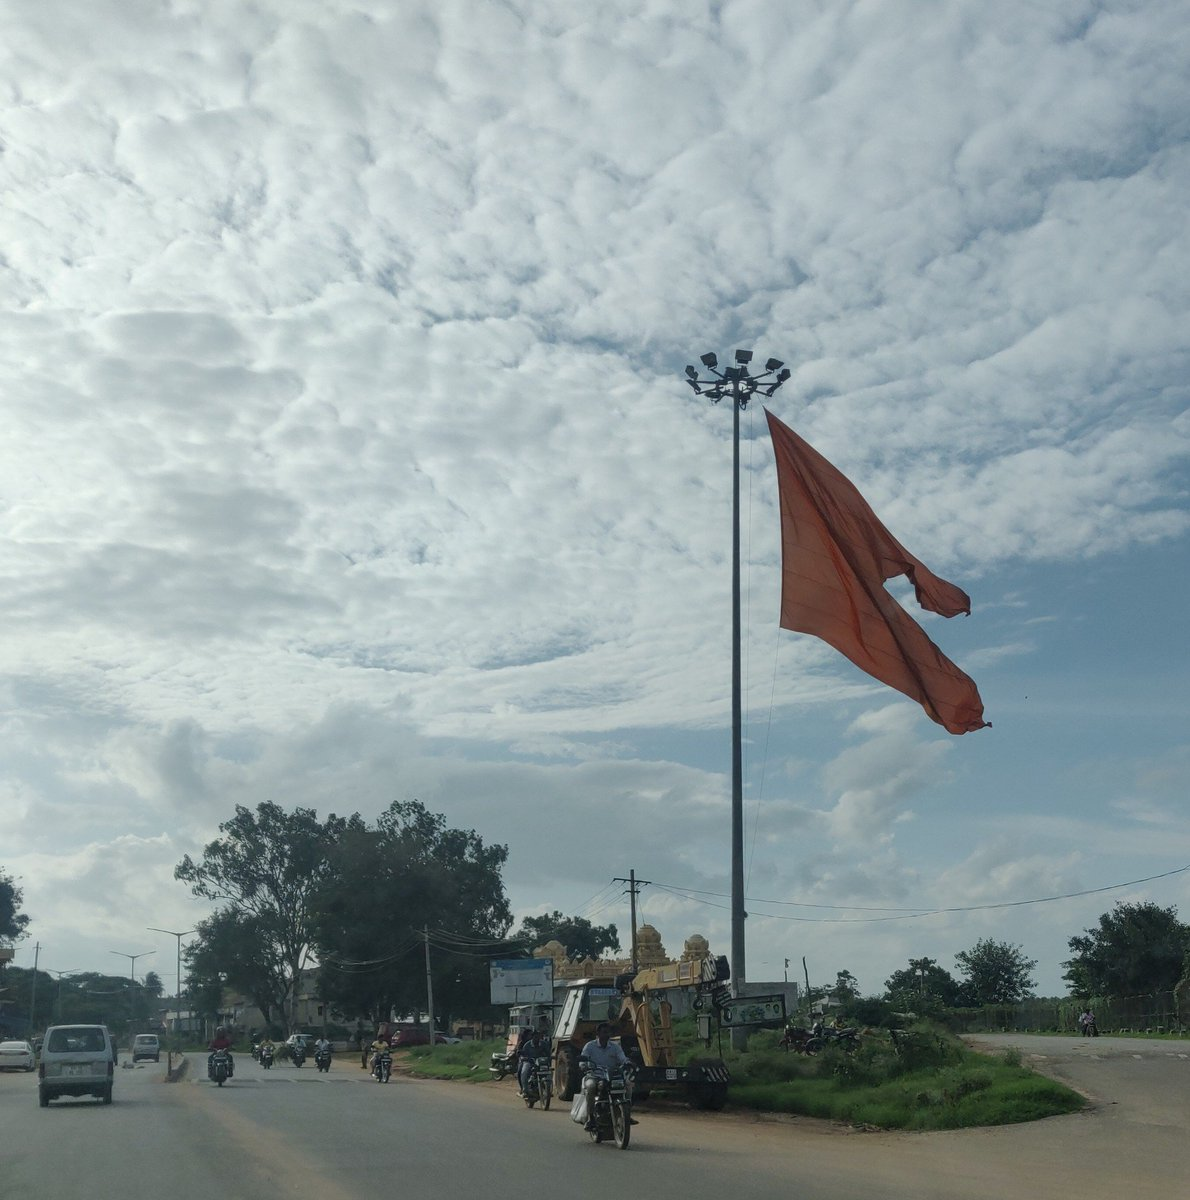 As soon as you enter Tiptur in Karnataka, this is how you are welcomed. 👍